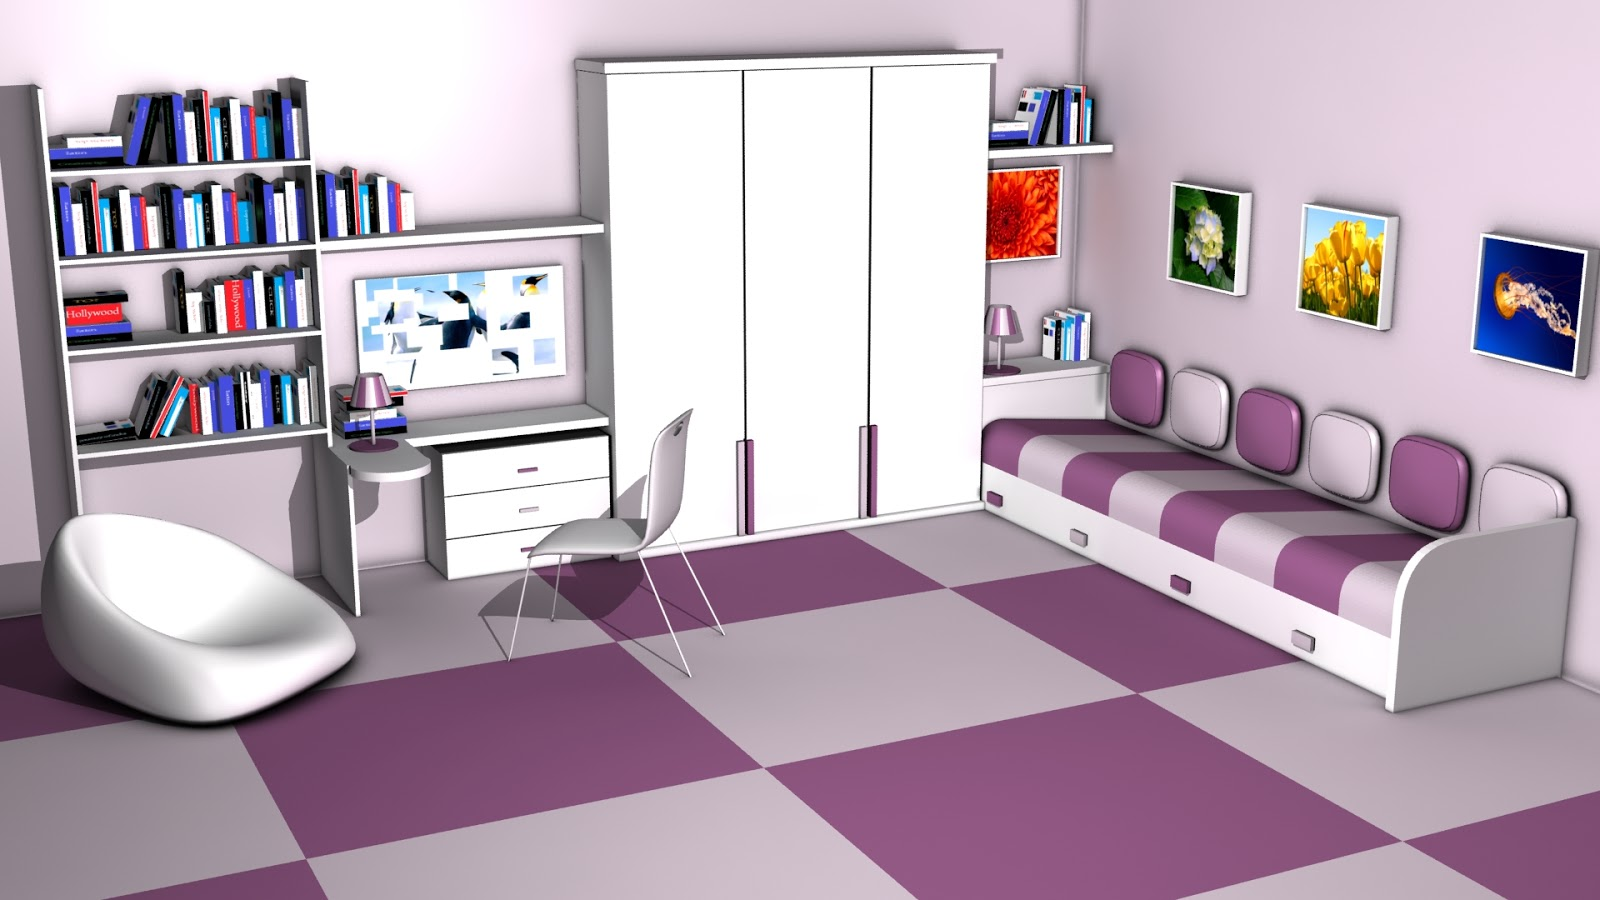 Sajid designs room interior design 3ds max Create a 3d room